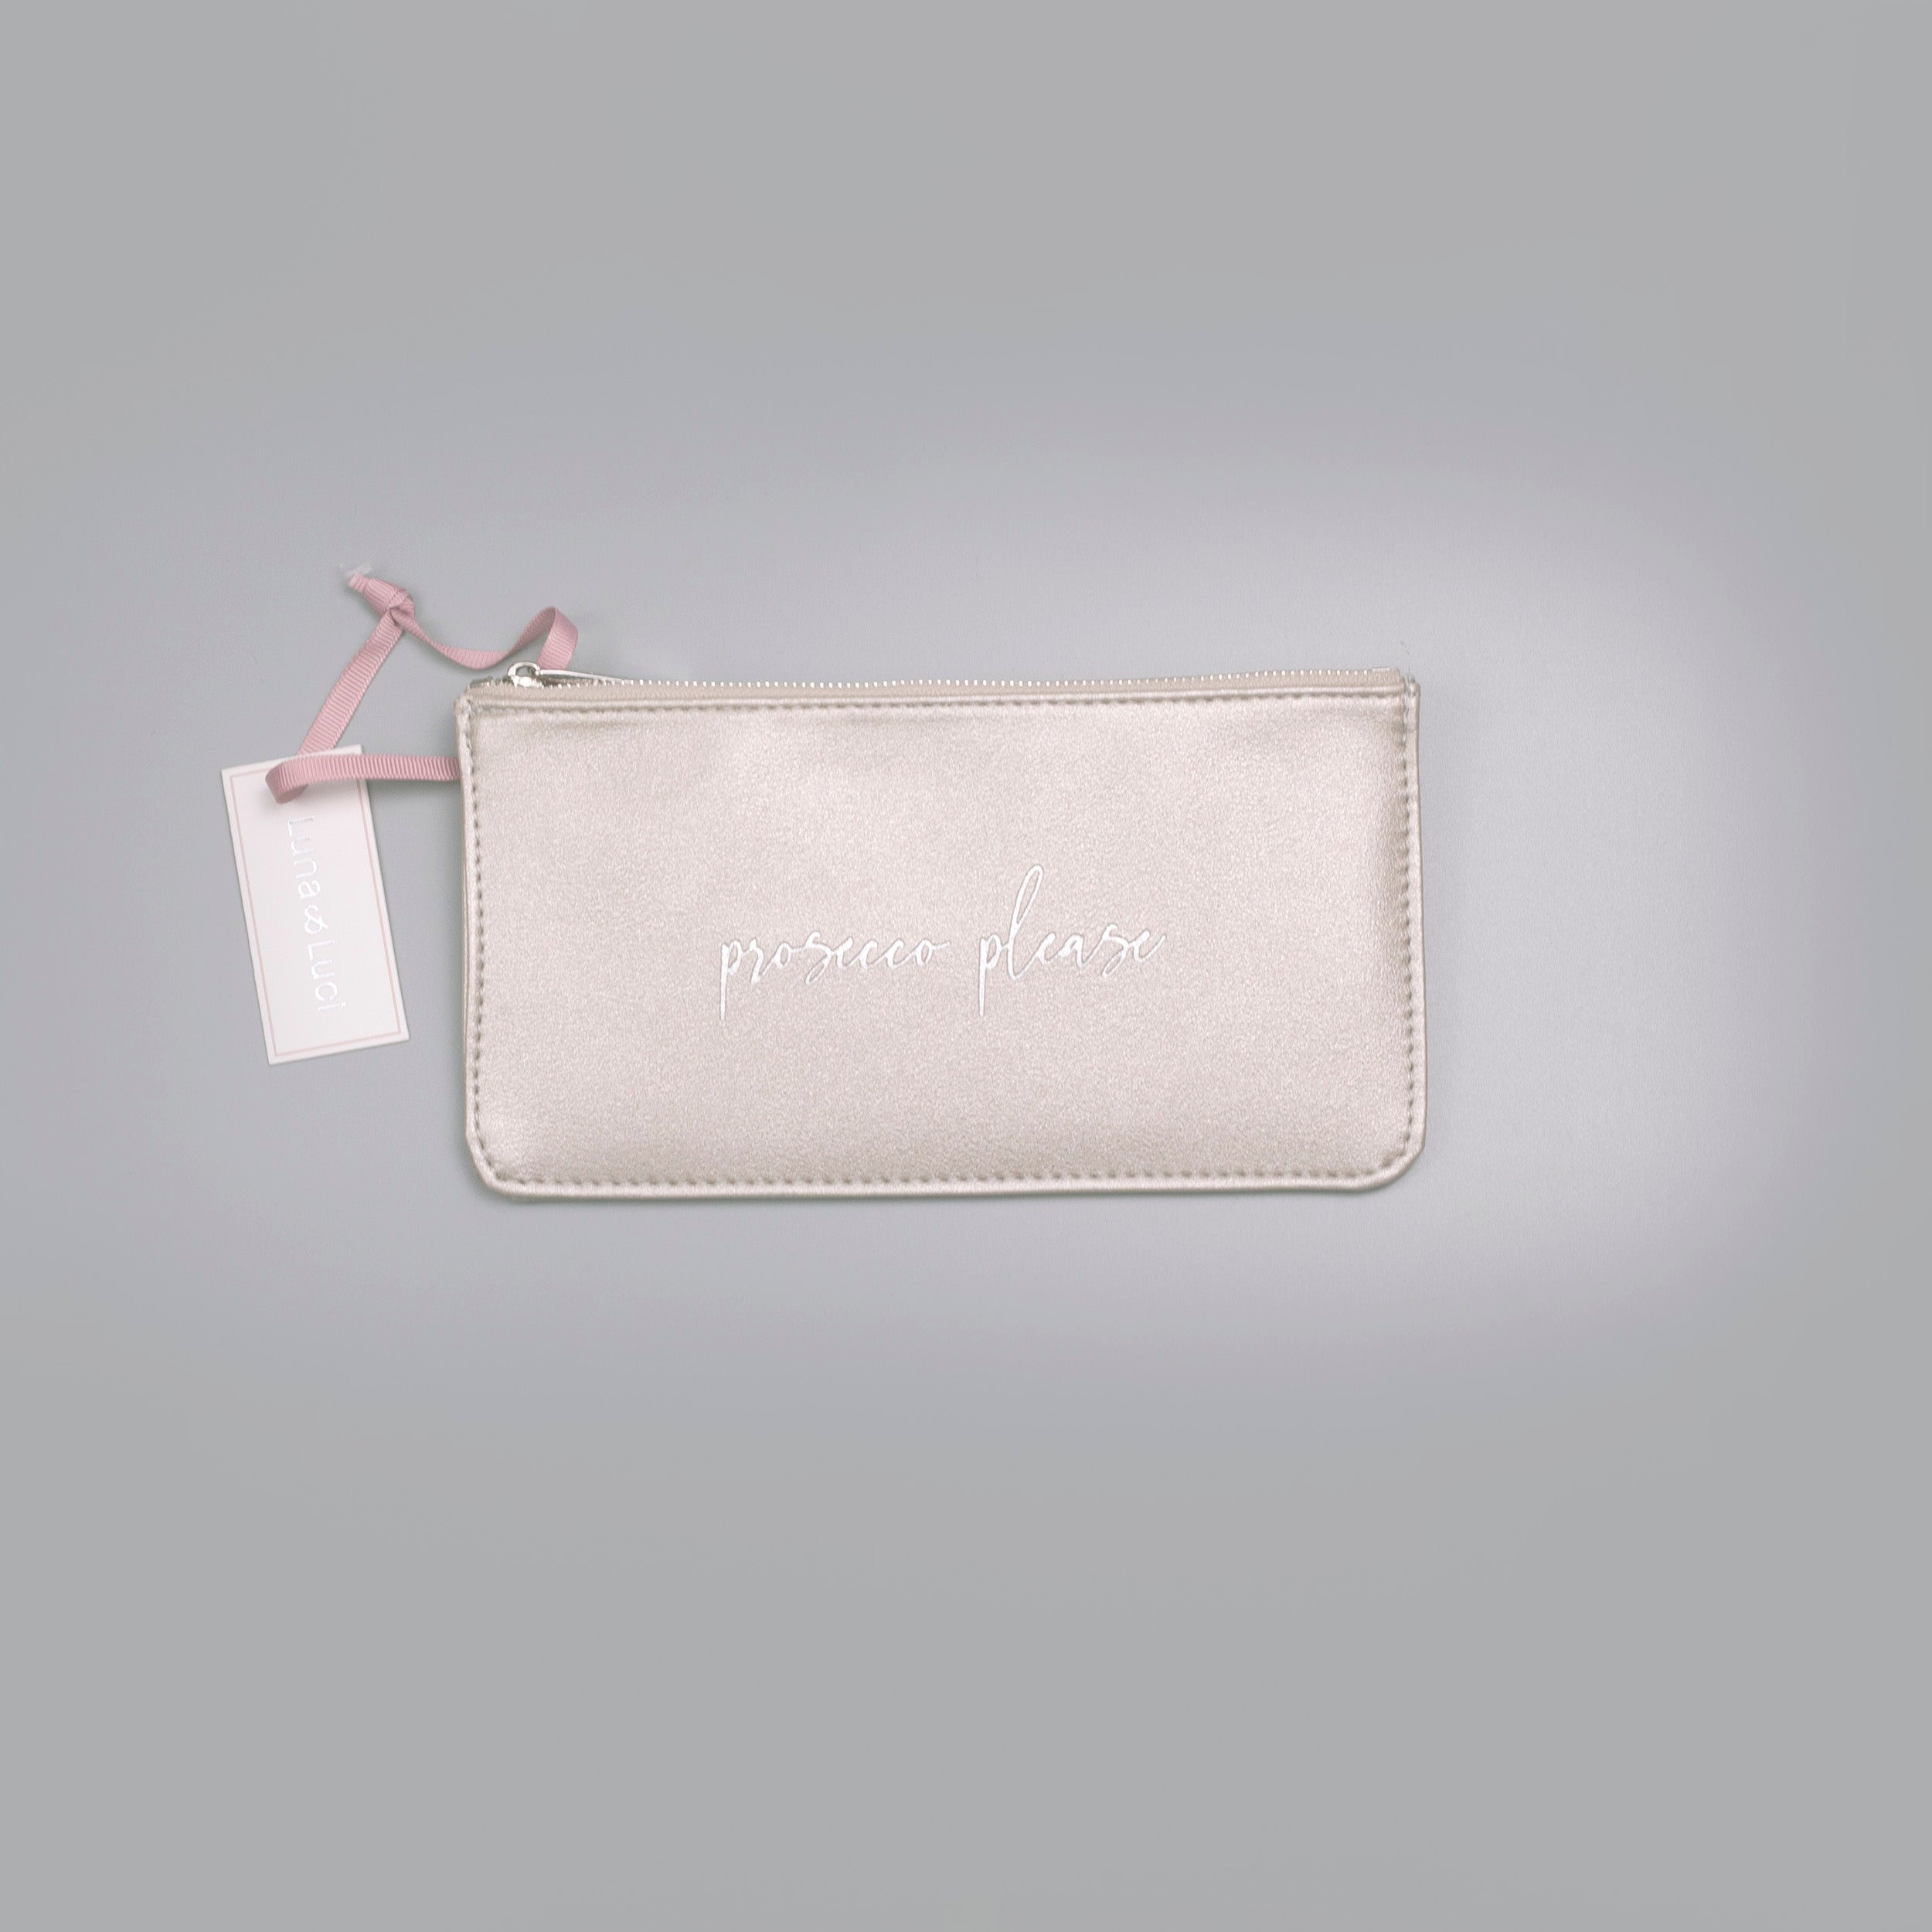 Prosecco Please Small Gold Pouch